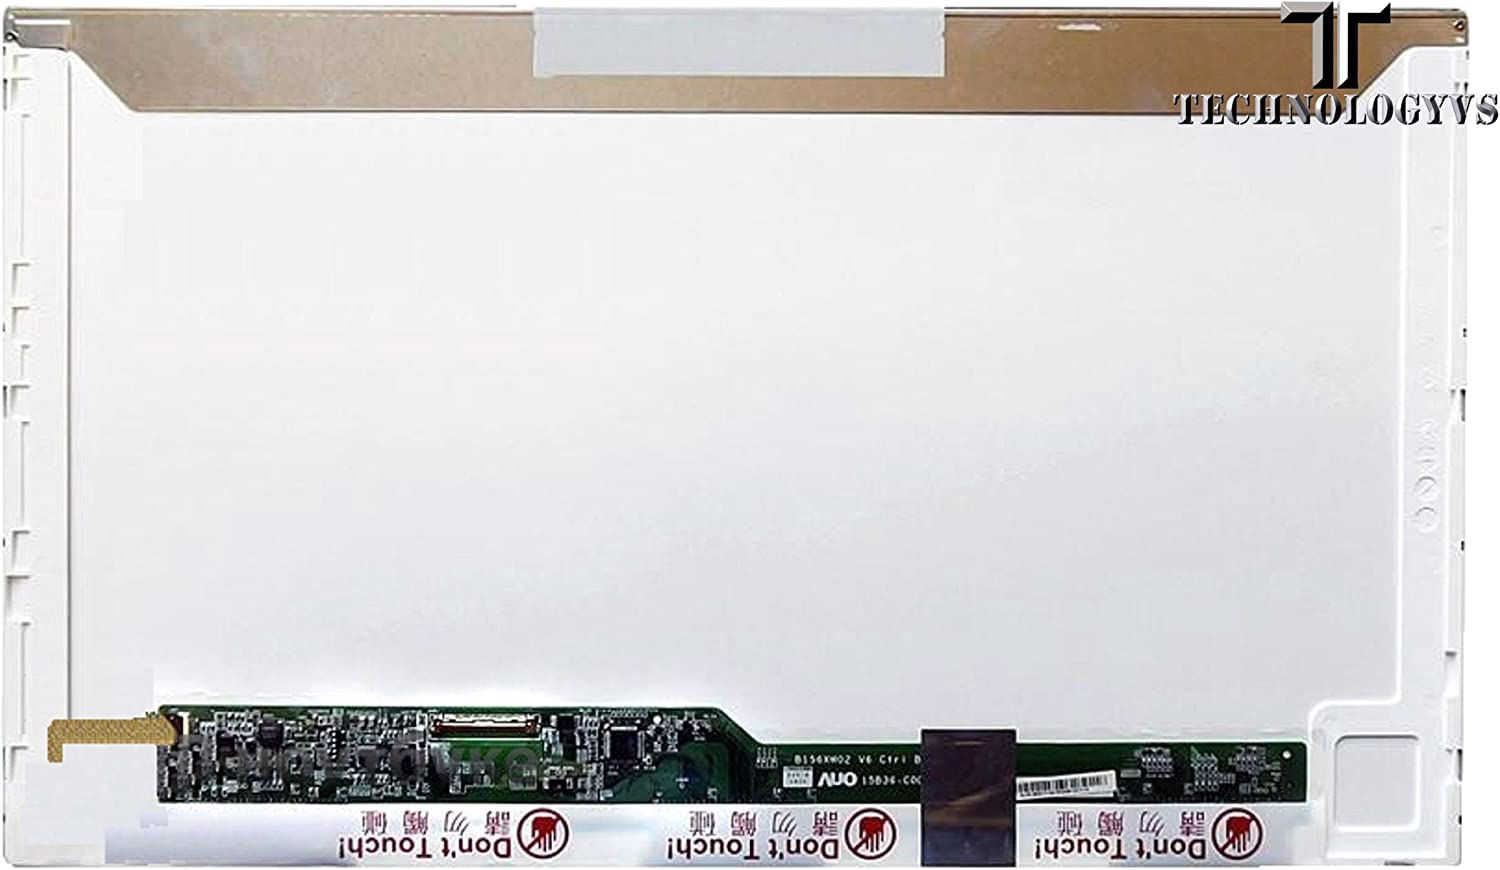 15.6 Replacement LCD LED Laptop Screen B156XW02 V.2 HW:4A for Acer Aspire AS5733Z 5733 PEW71 PEW72 ACER ASPIRE 5734Z SERIES PAWF6 ACER EXTENSA 5235 /& ASPIRE AS5336 5336 5735 5738Z 5742Z 5551